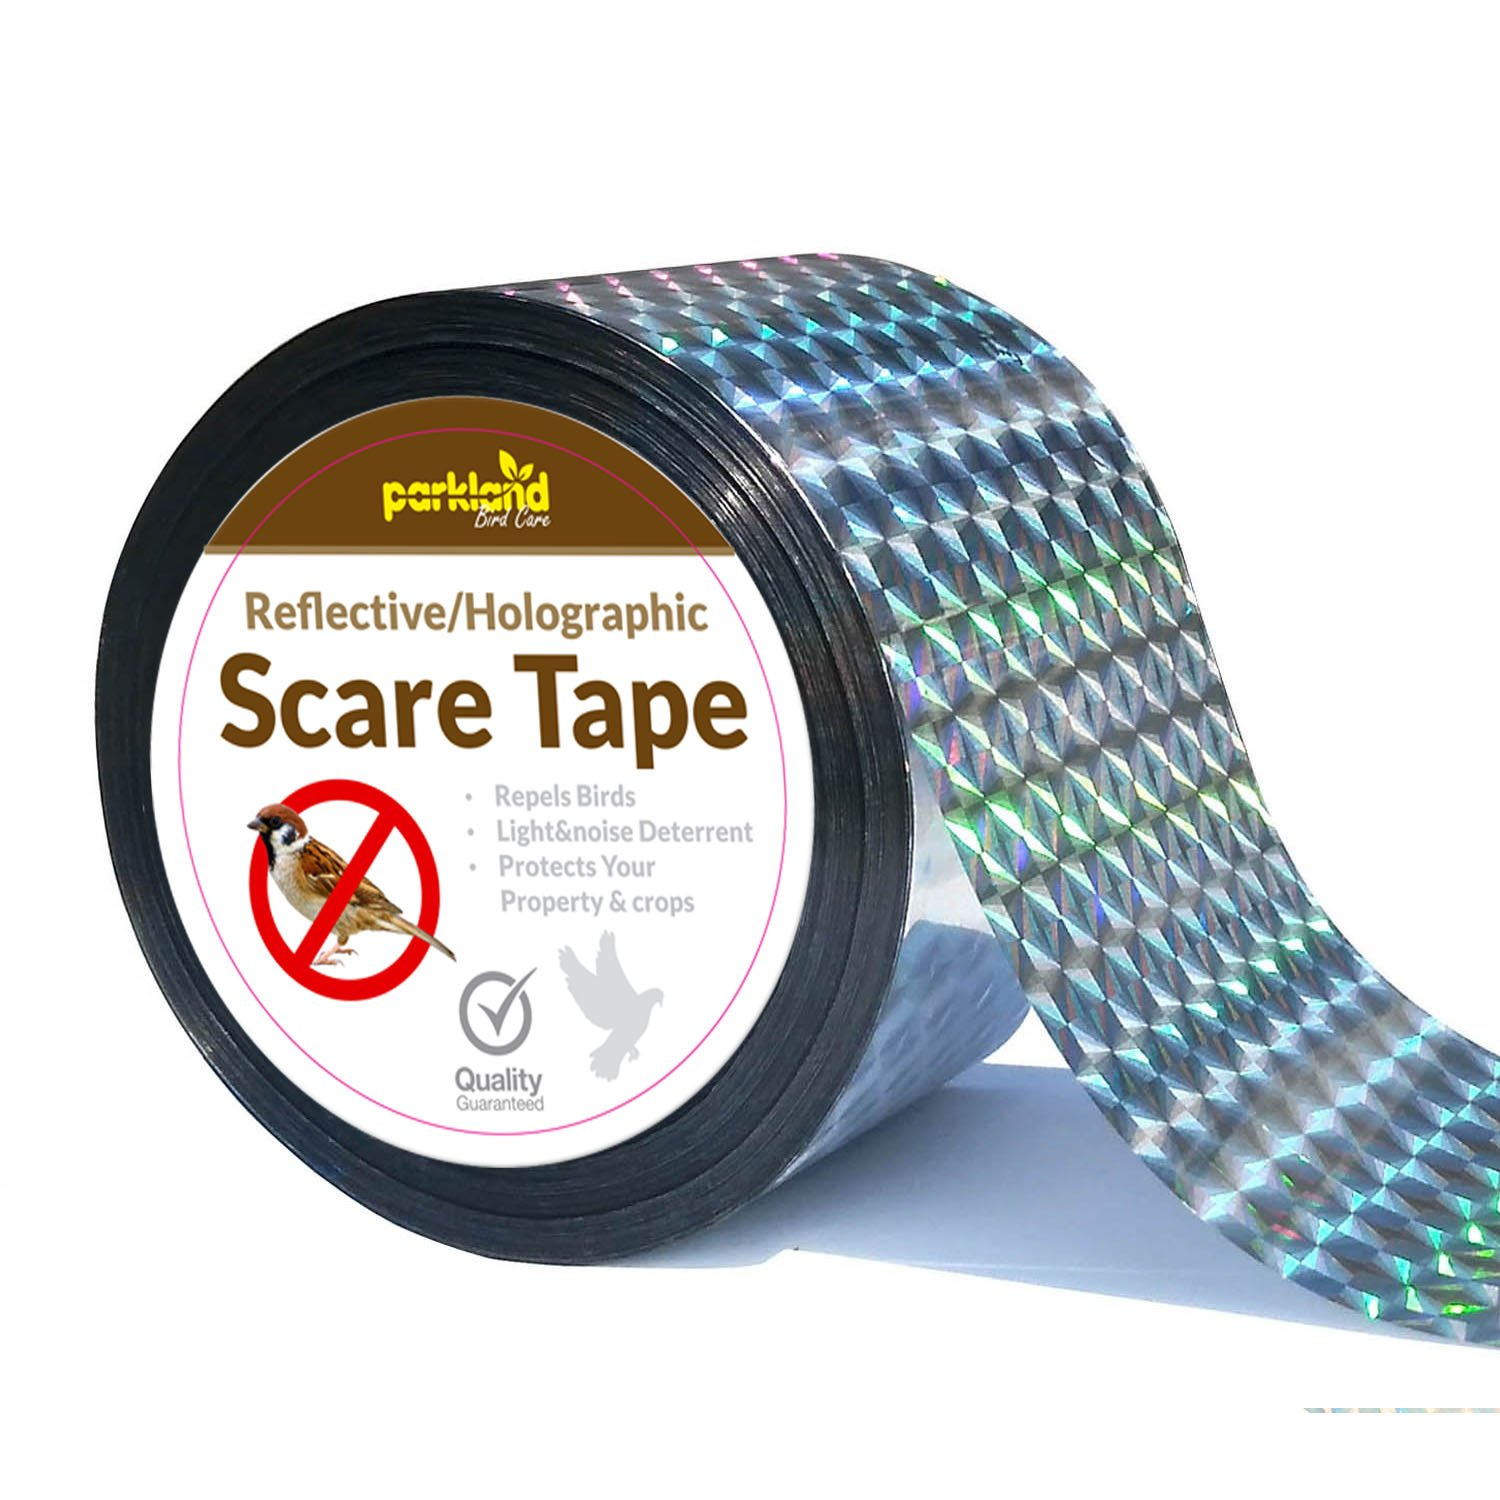 Crows and More Ducks 1 Deterrent Works with Netting And Spikes Parkland/® 350ft Bird Repellent Scare Tape Keep Away Pigeons